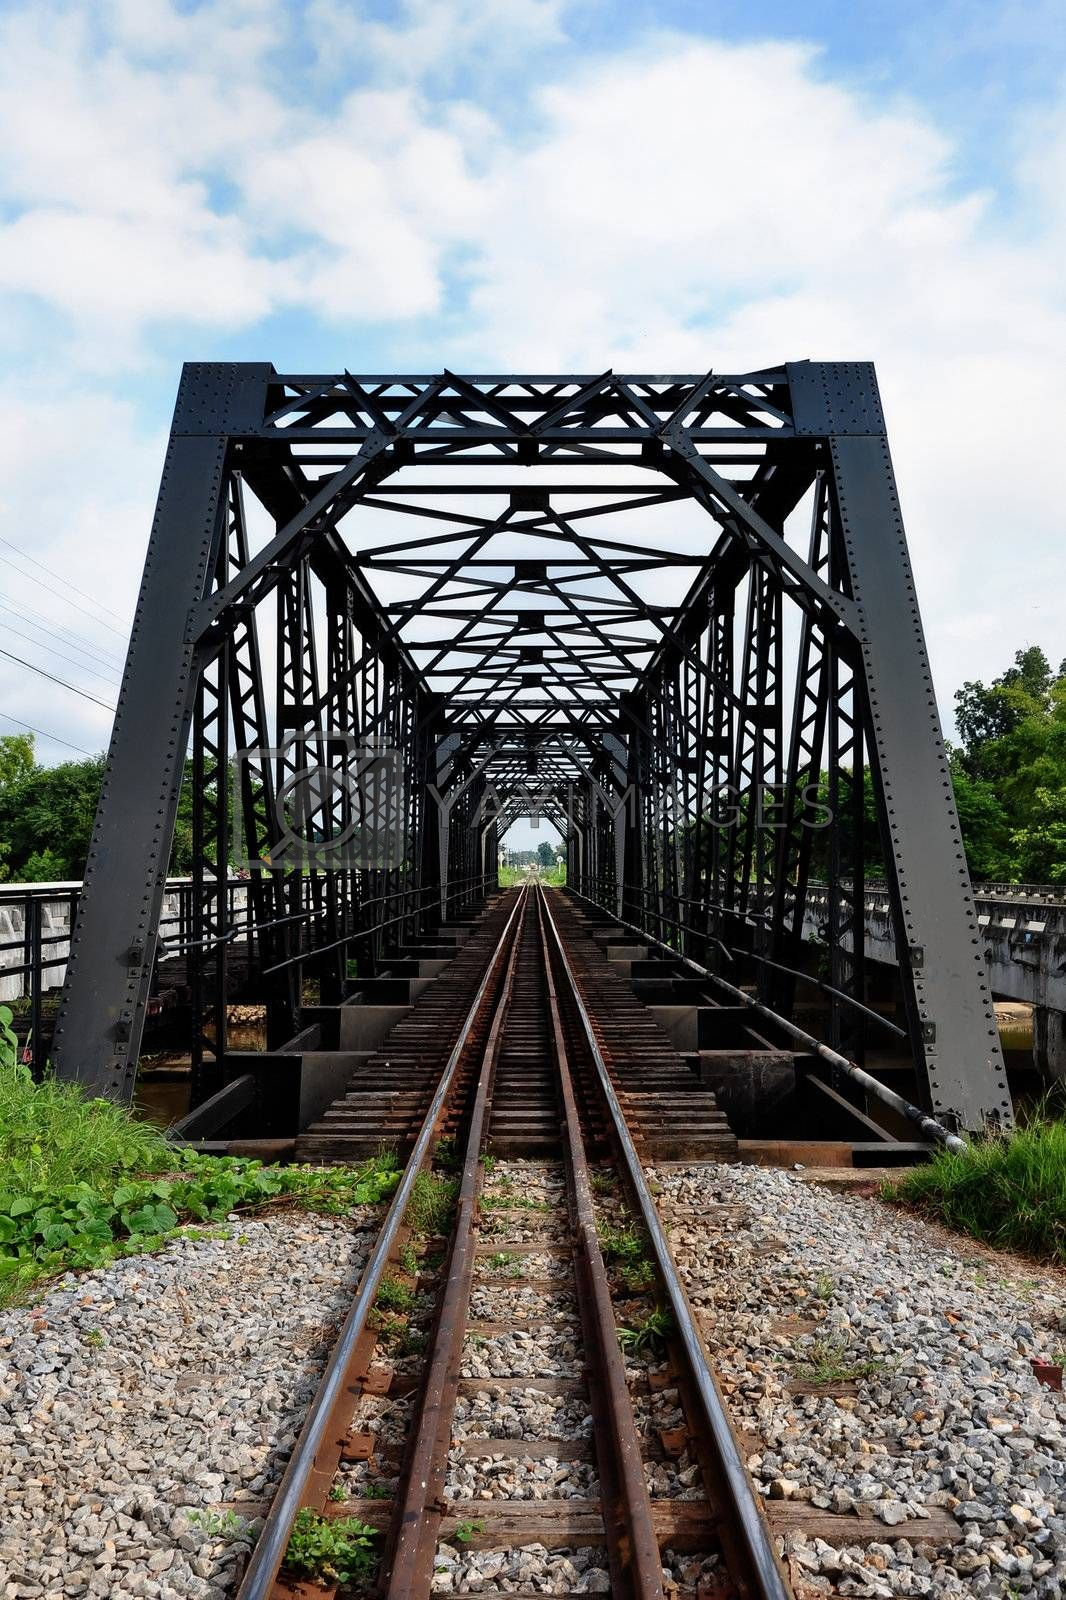 Bridge made of steel. For the train to pass.